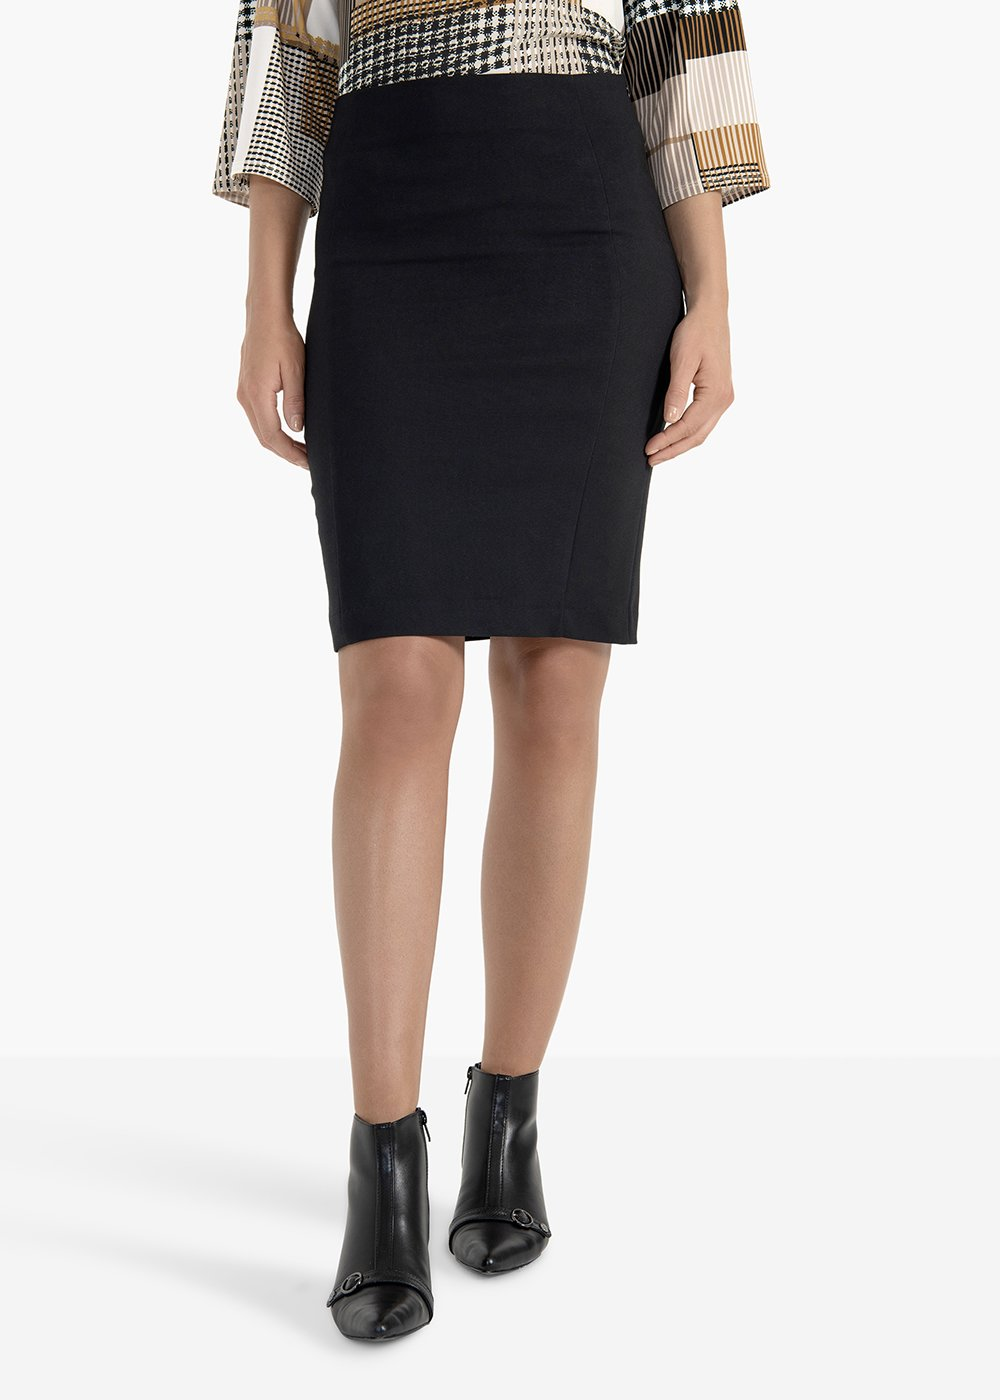 Pencil skirt Gaia in technical fabric with back tear - Black - Woman